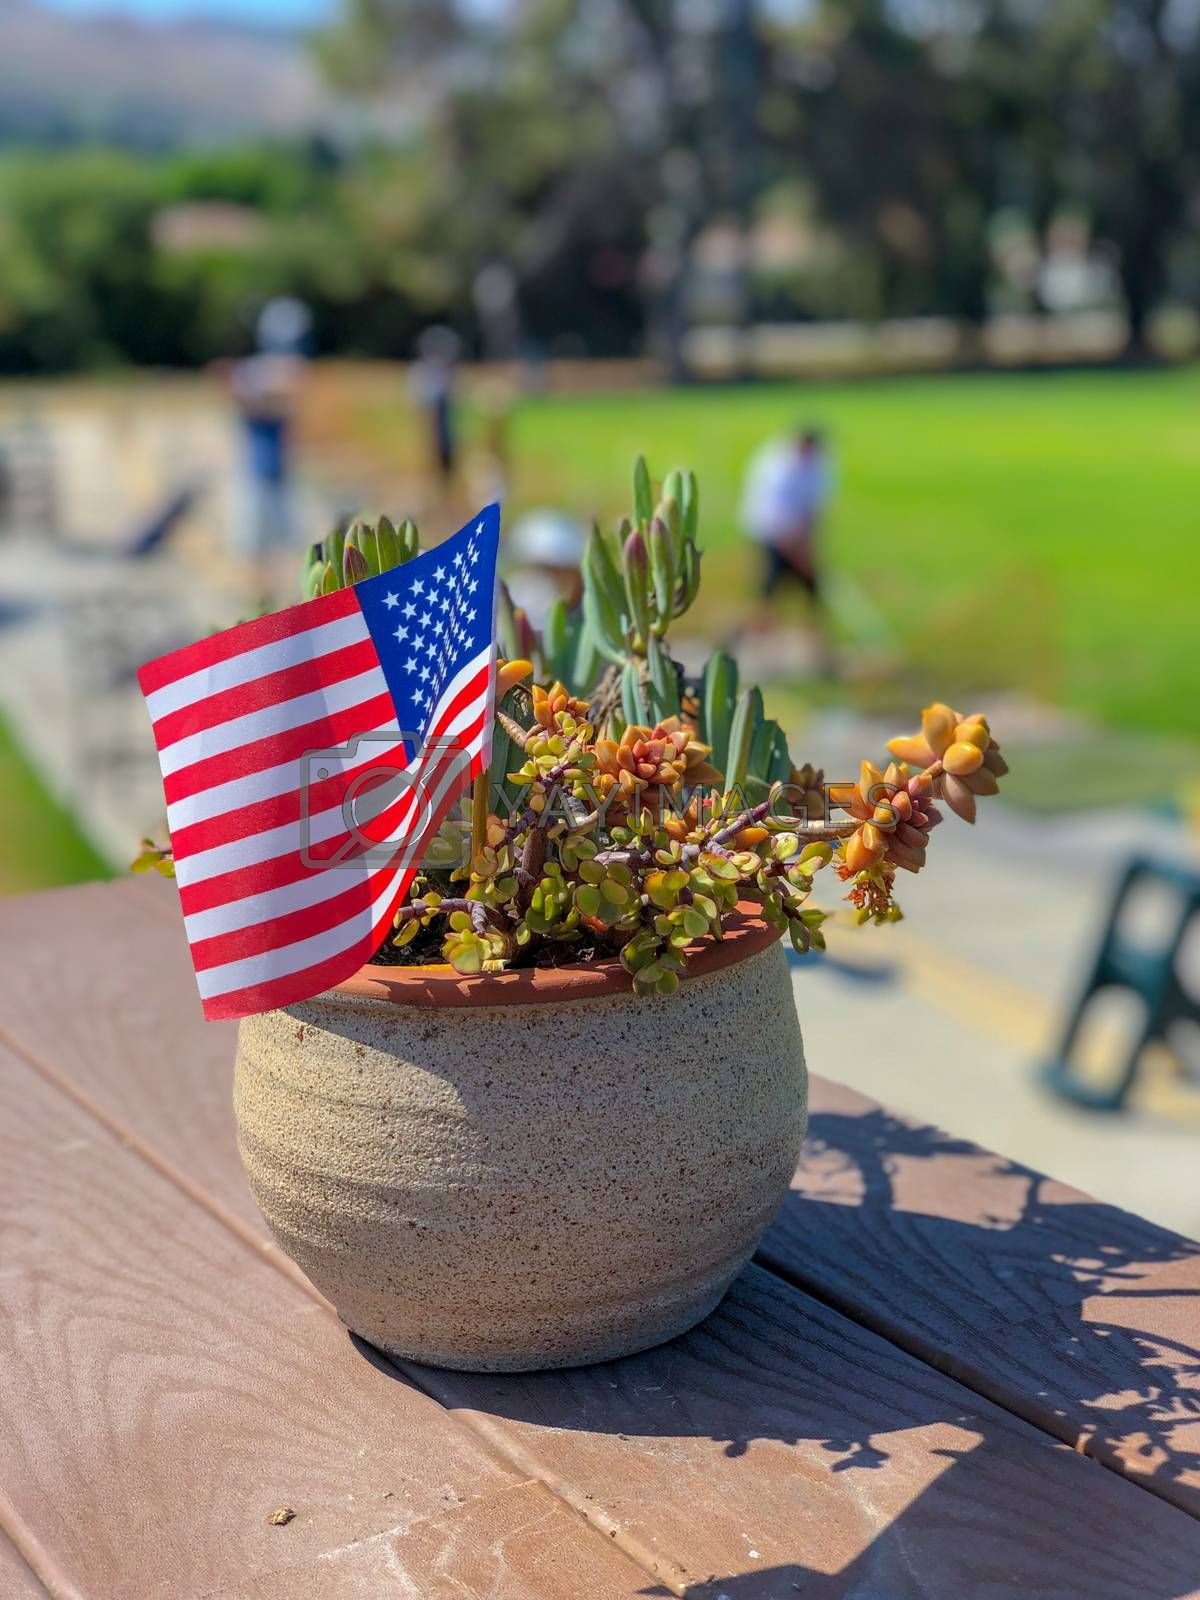 Patriotic flower pot with American flags and golfer on the background. American flag decoration.